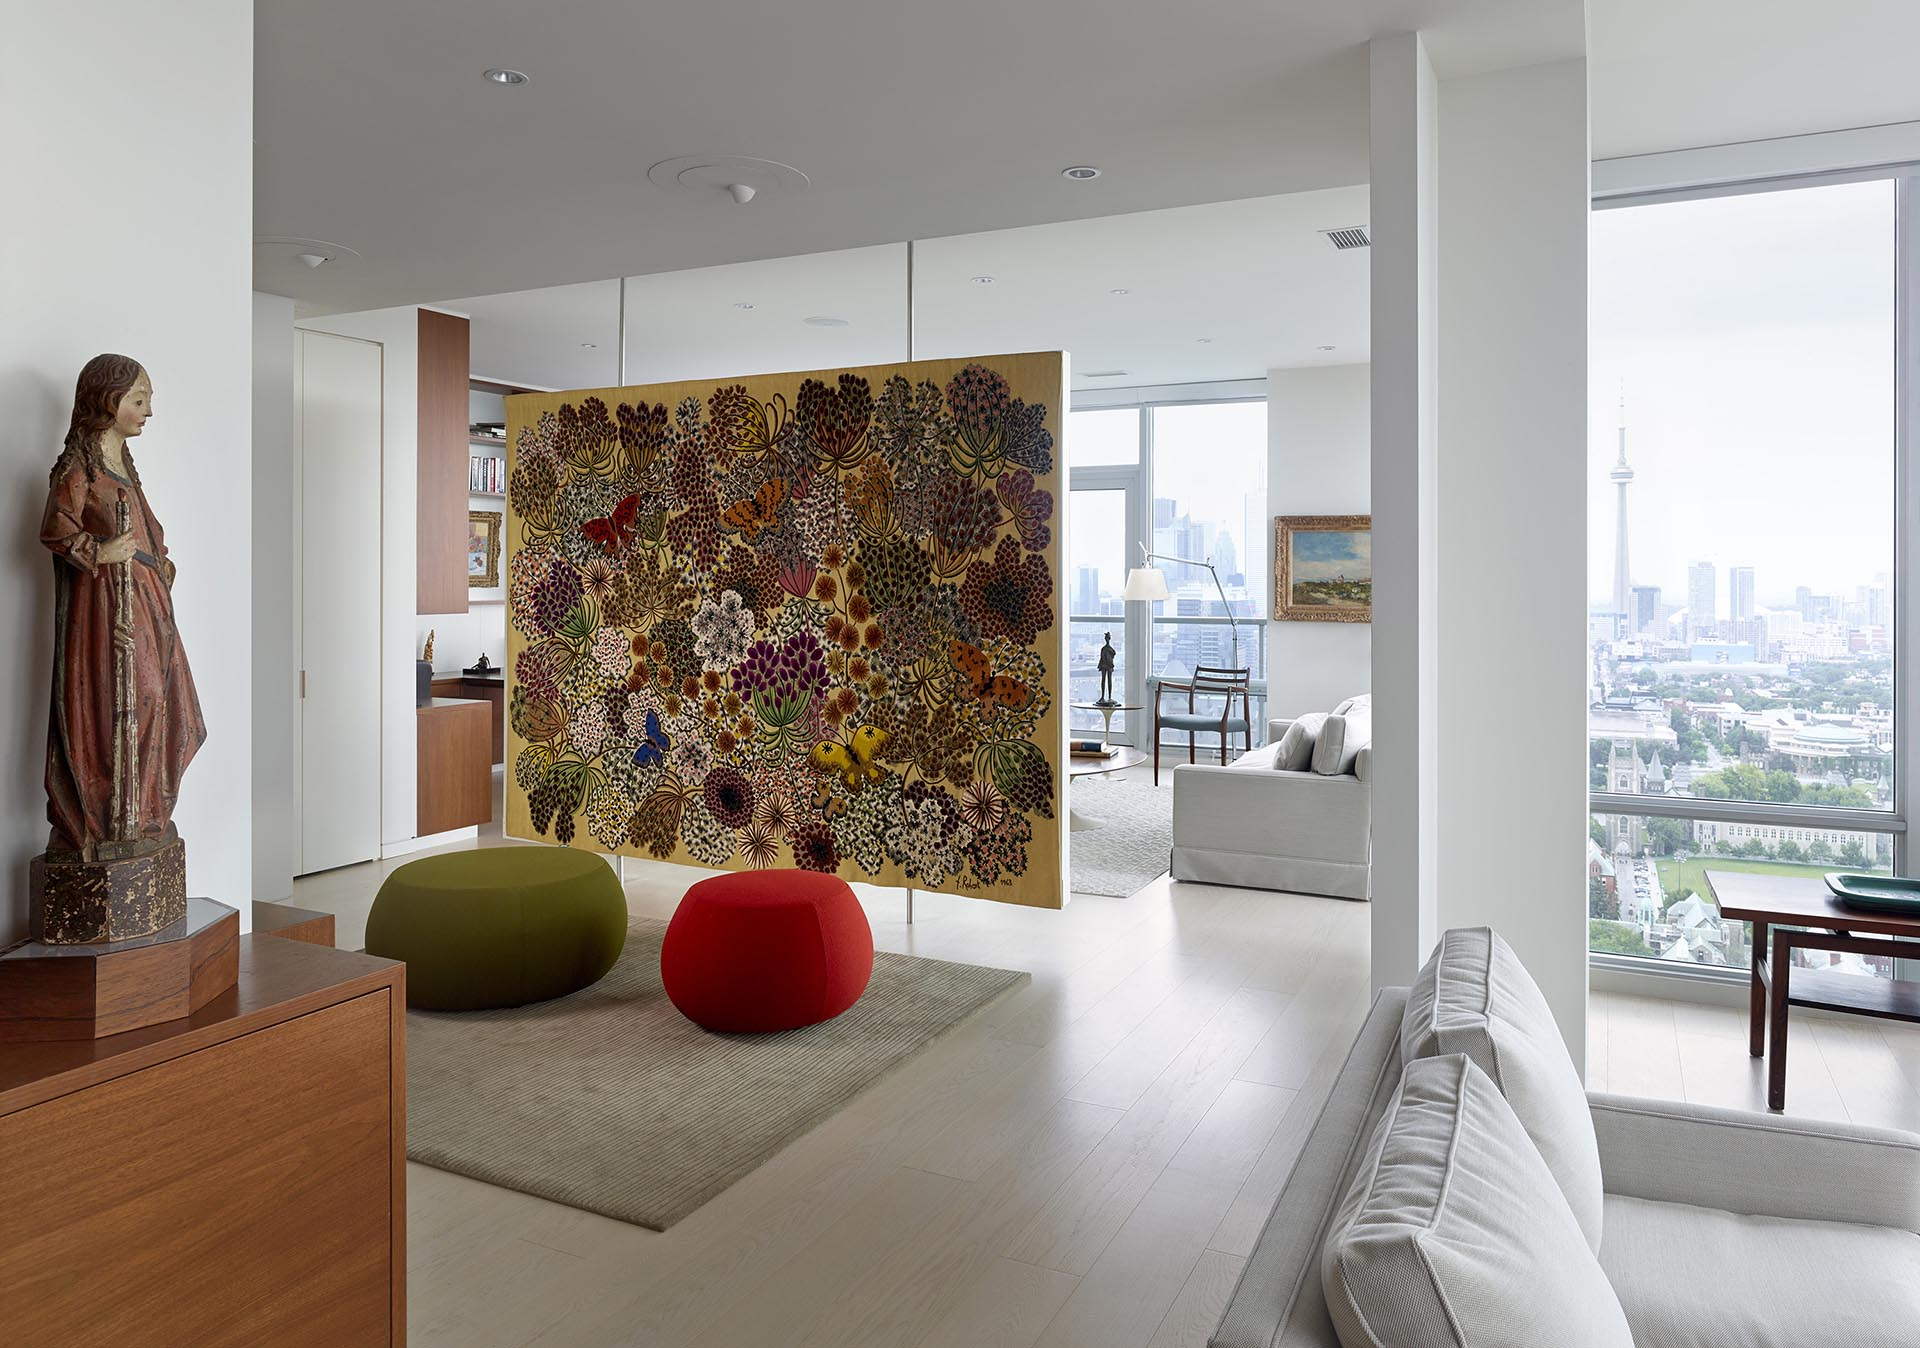 A Floating Room Divider Is Used To Display Artwork In This Apartment